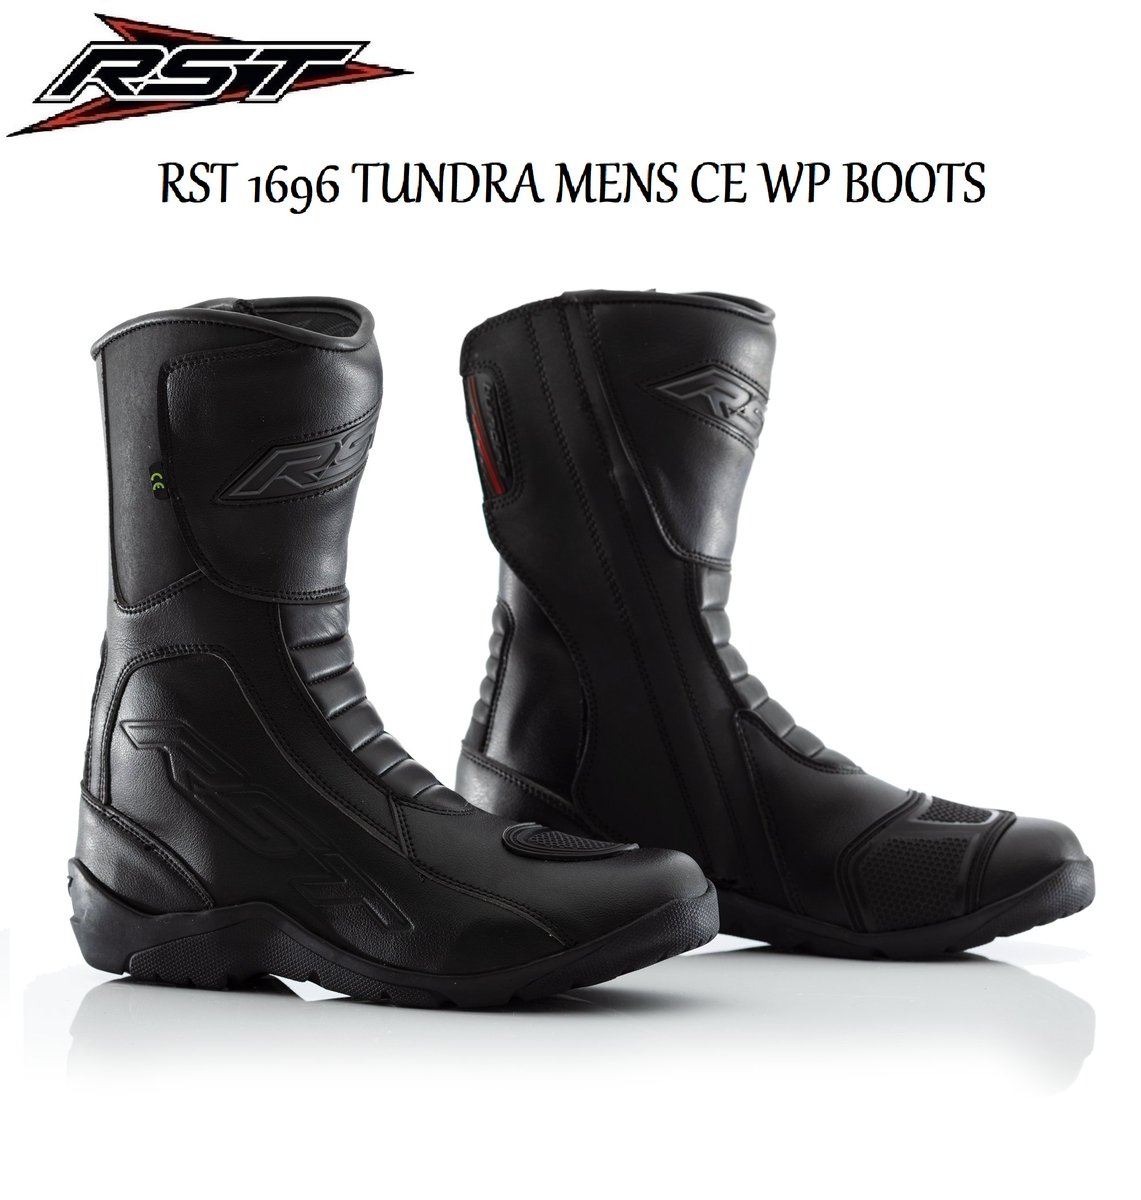 RST Paragon II WP CE 1568/Motorcycle Boot Black